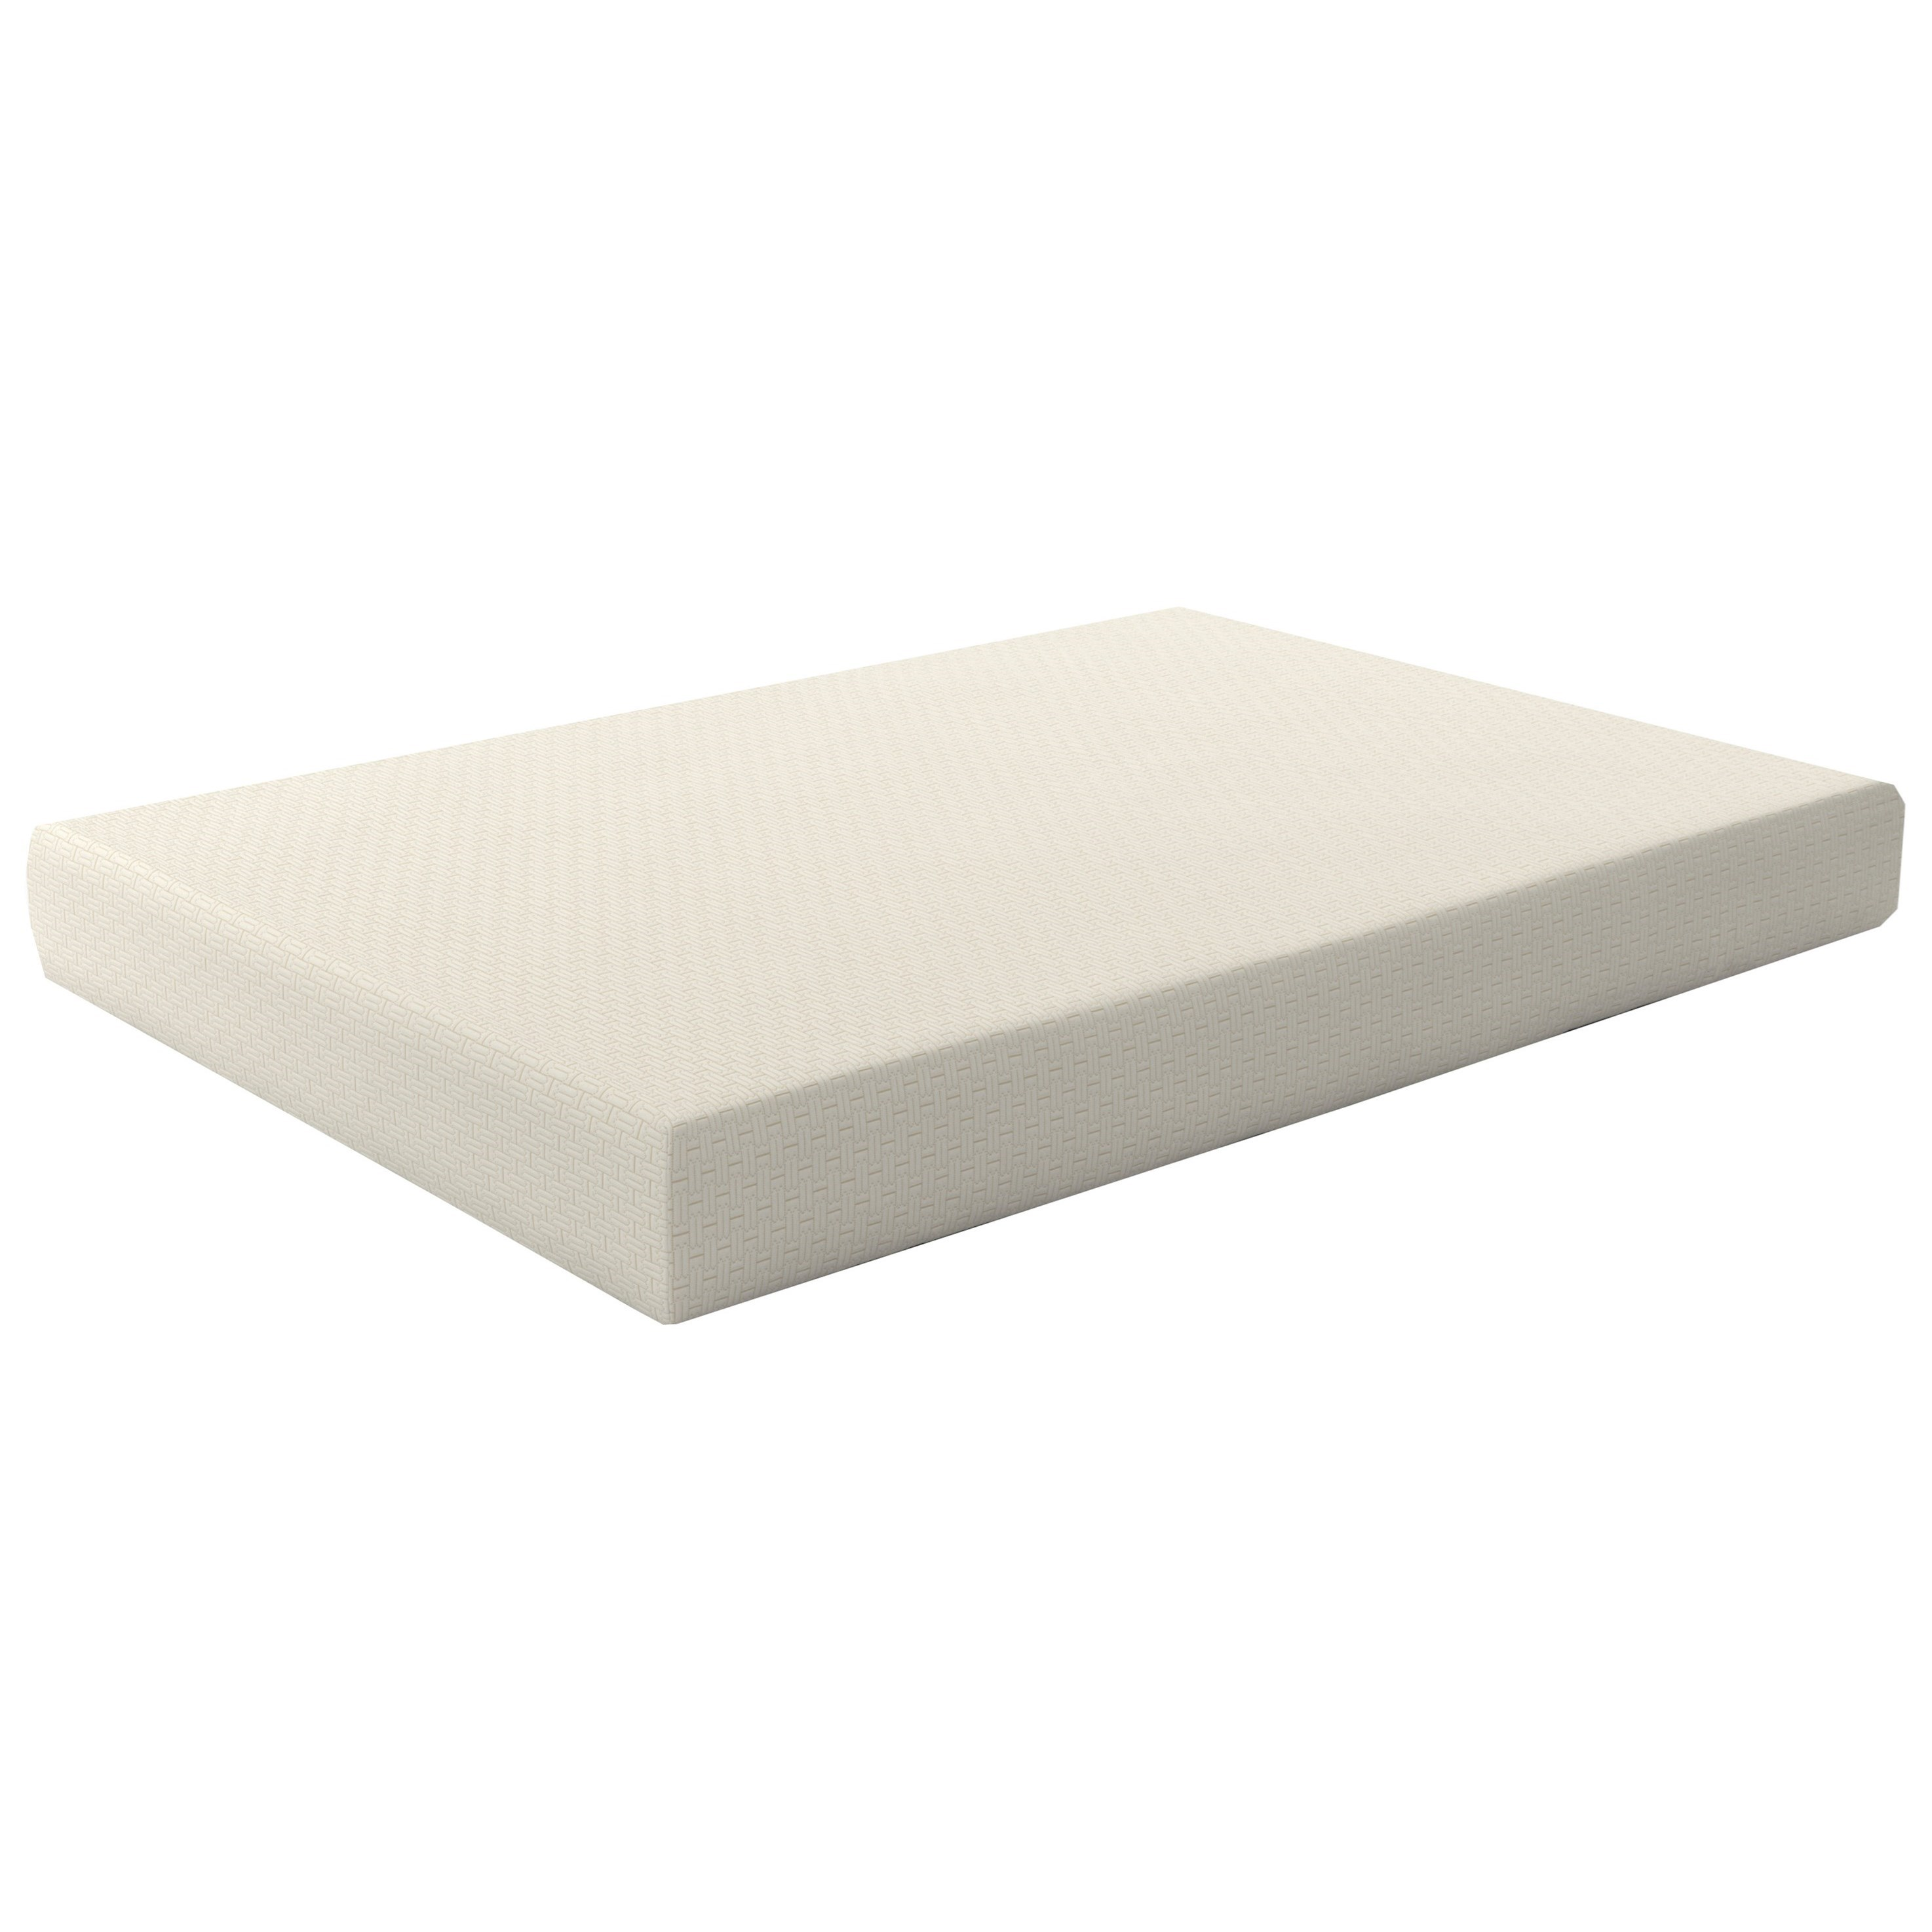 "M726 Chime 8 Full 8"" Memory Foam Mattress by Sierra Sleep at EFO Furniture Outlet"